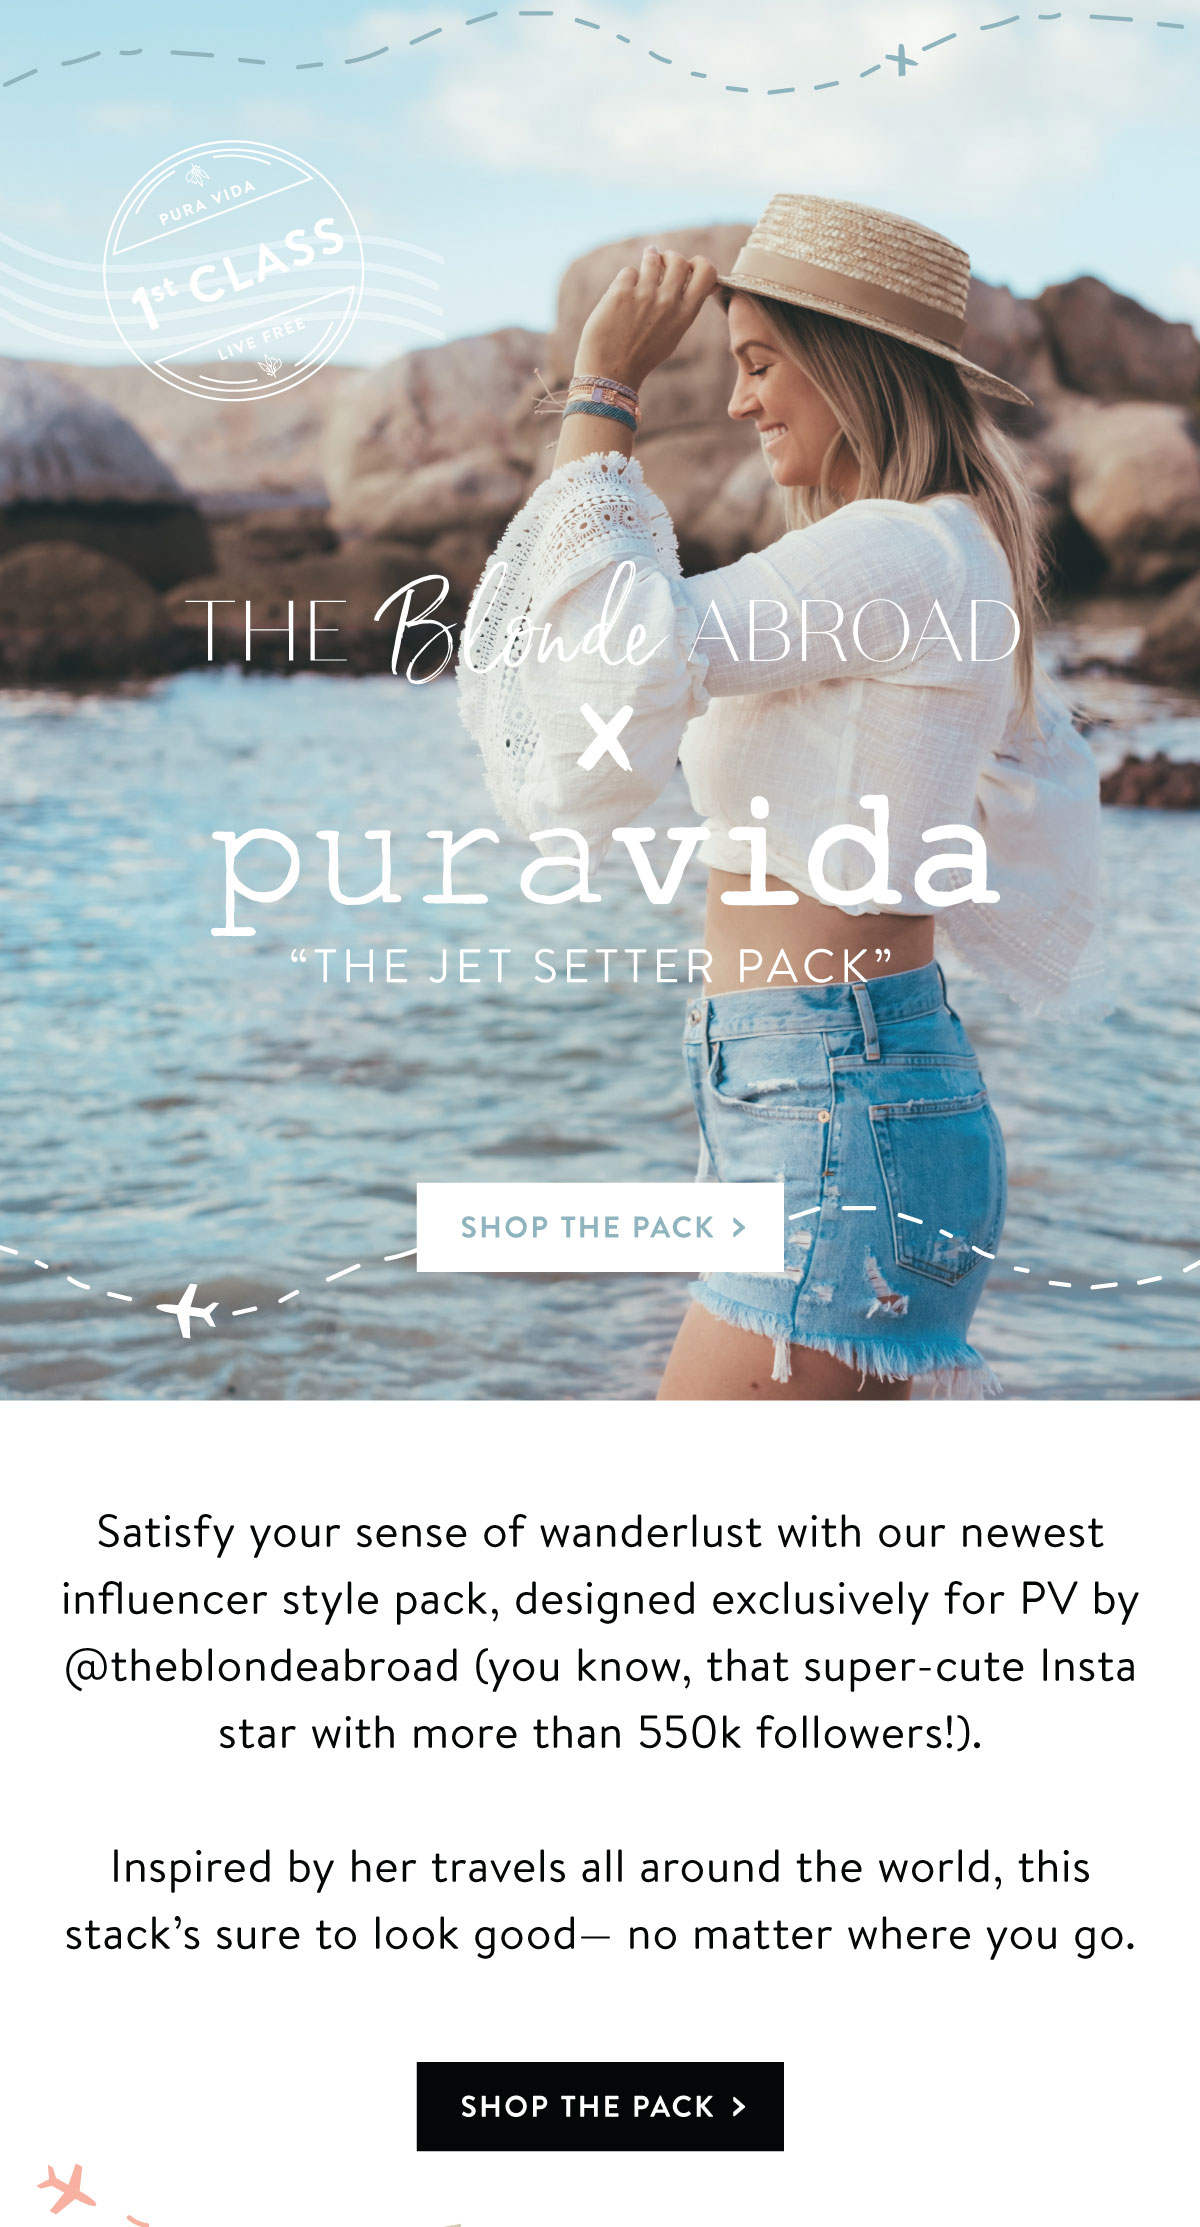 The Blonde Abroad x Pura Vida | The Jetsetter Pack